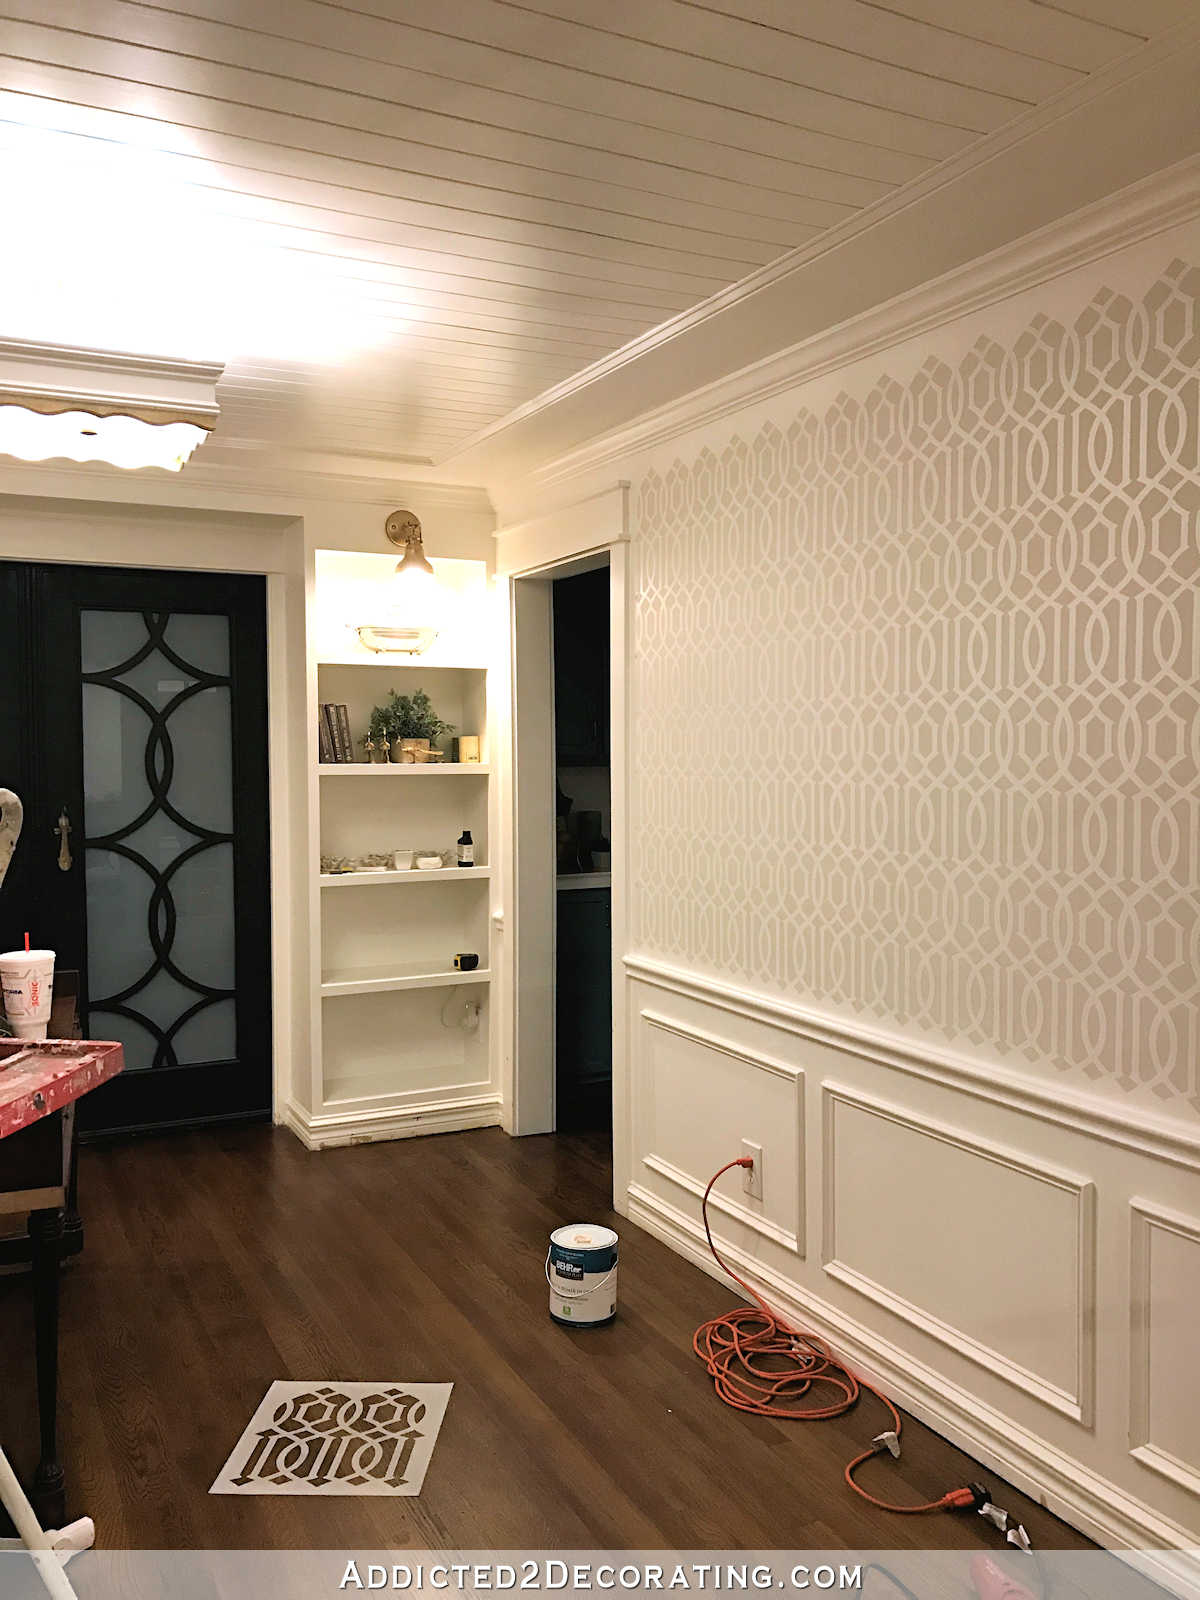 stenciled trellis design in Behr Polar Bear and Benjamin Moore Classic Gray on music room walls - 2